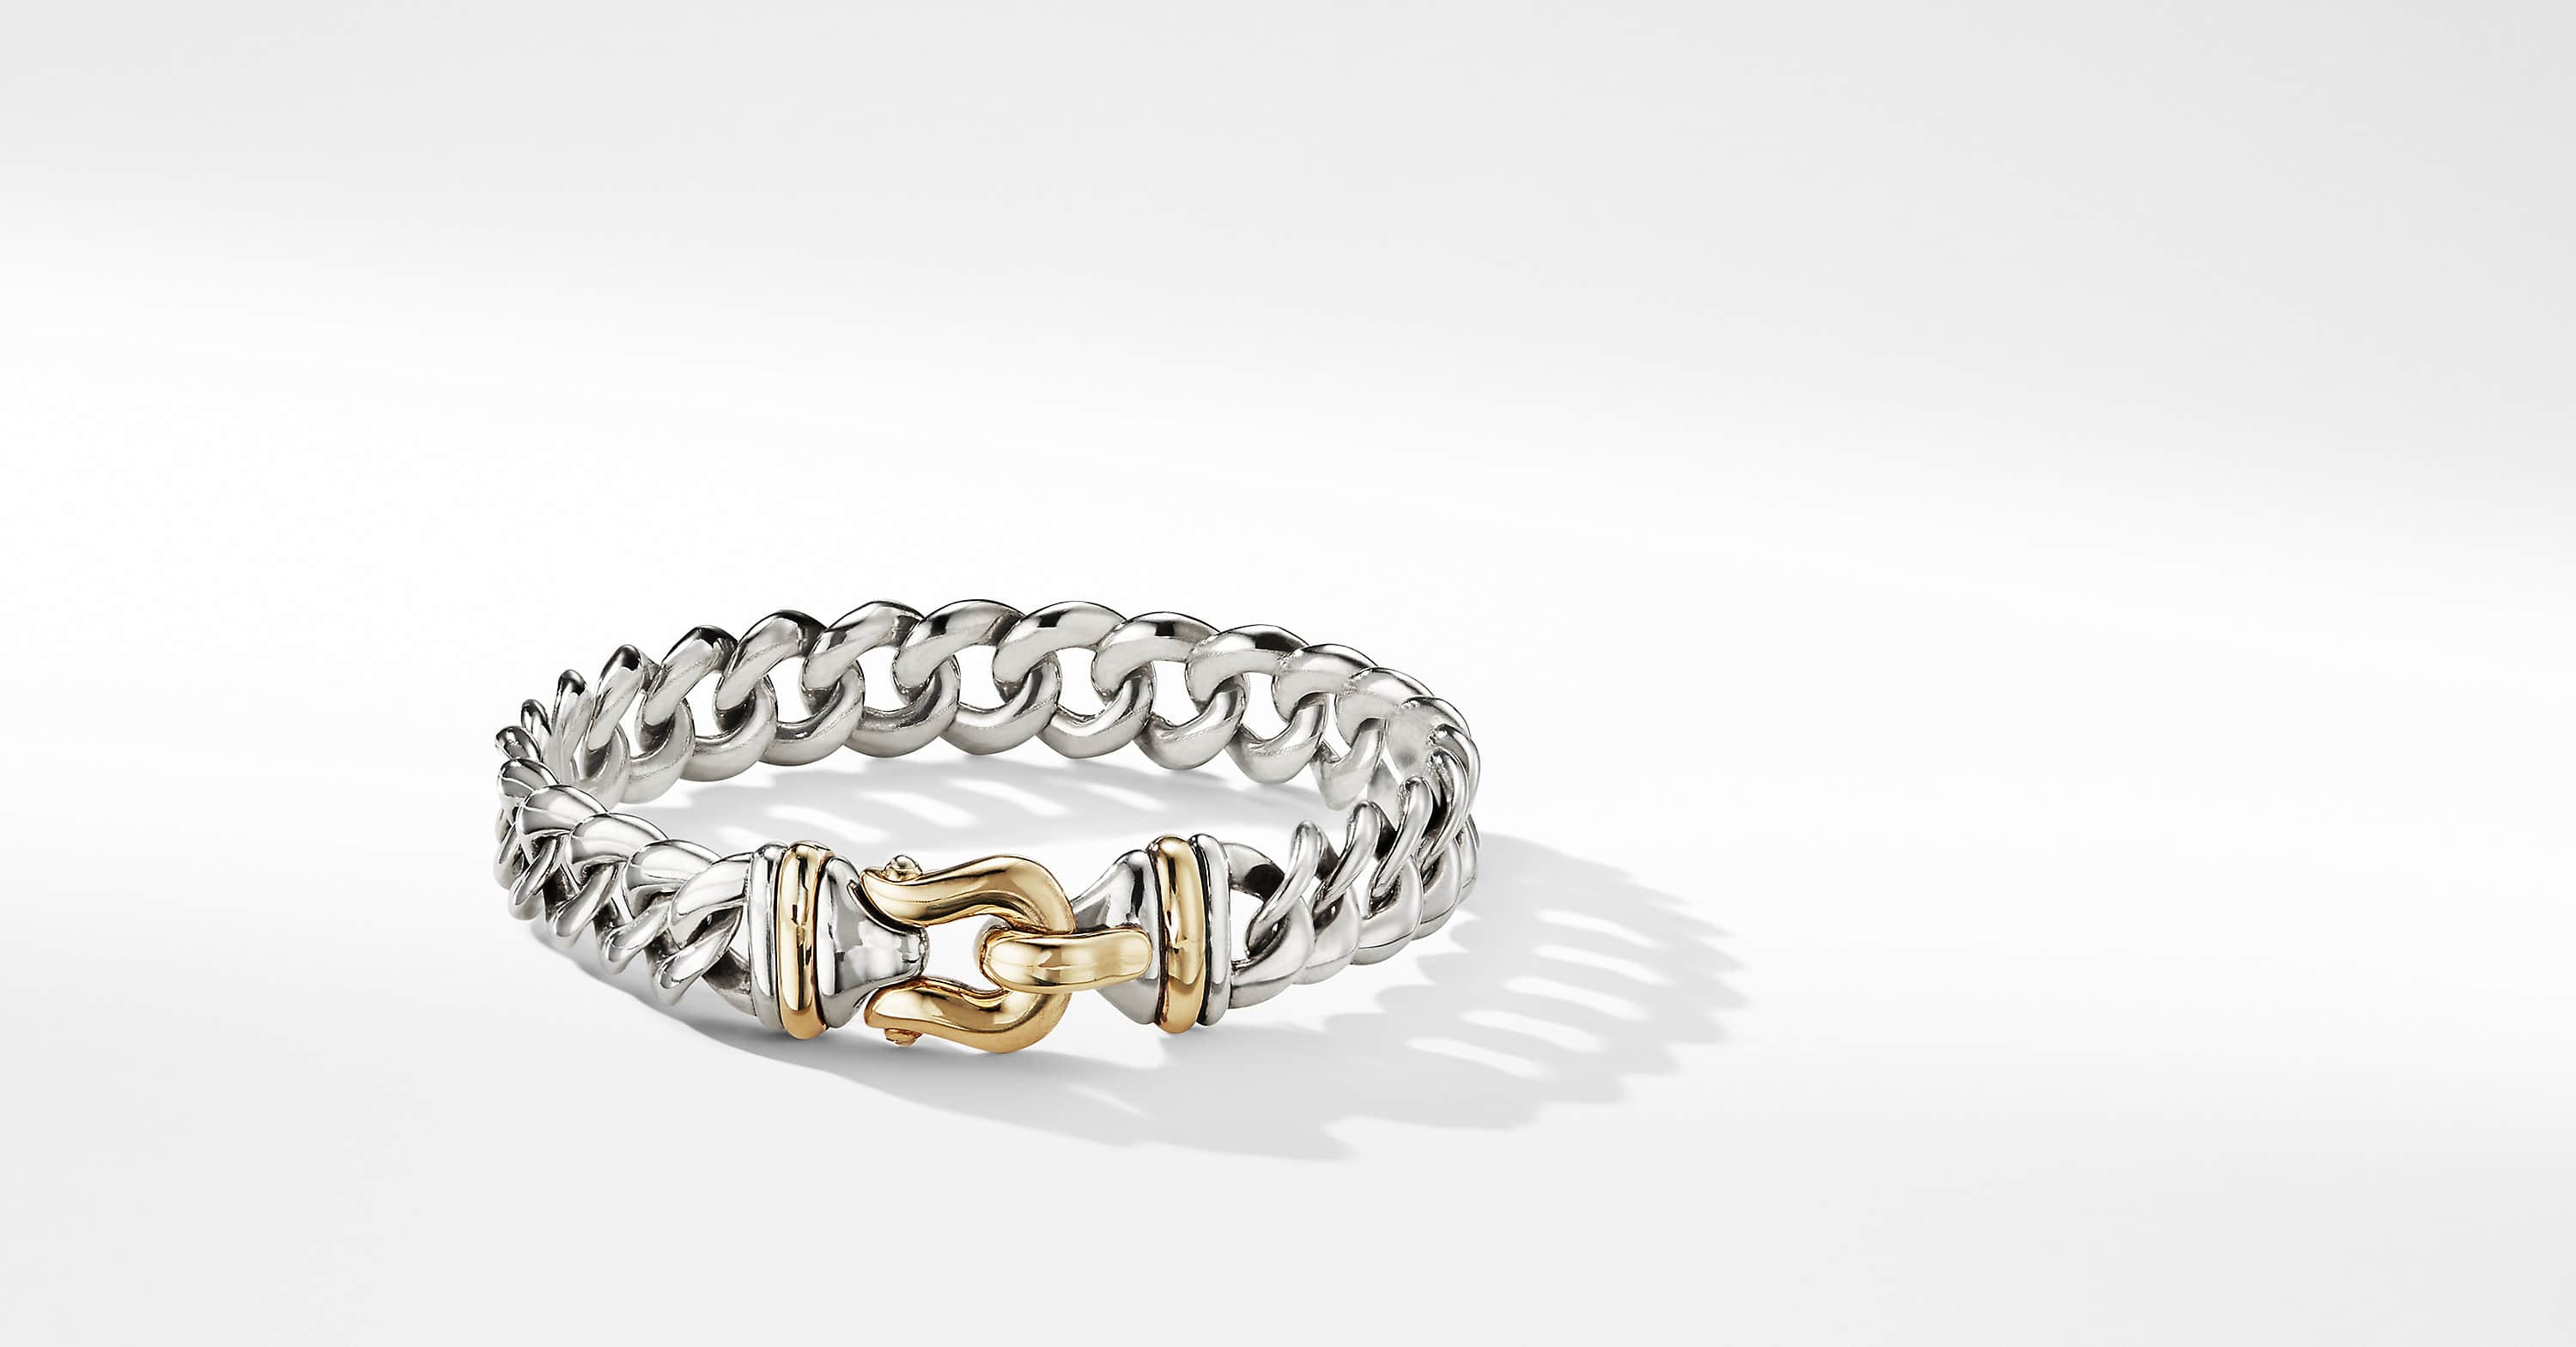 Buckle Single-Row Bracelet with 14K Gold, 10mm